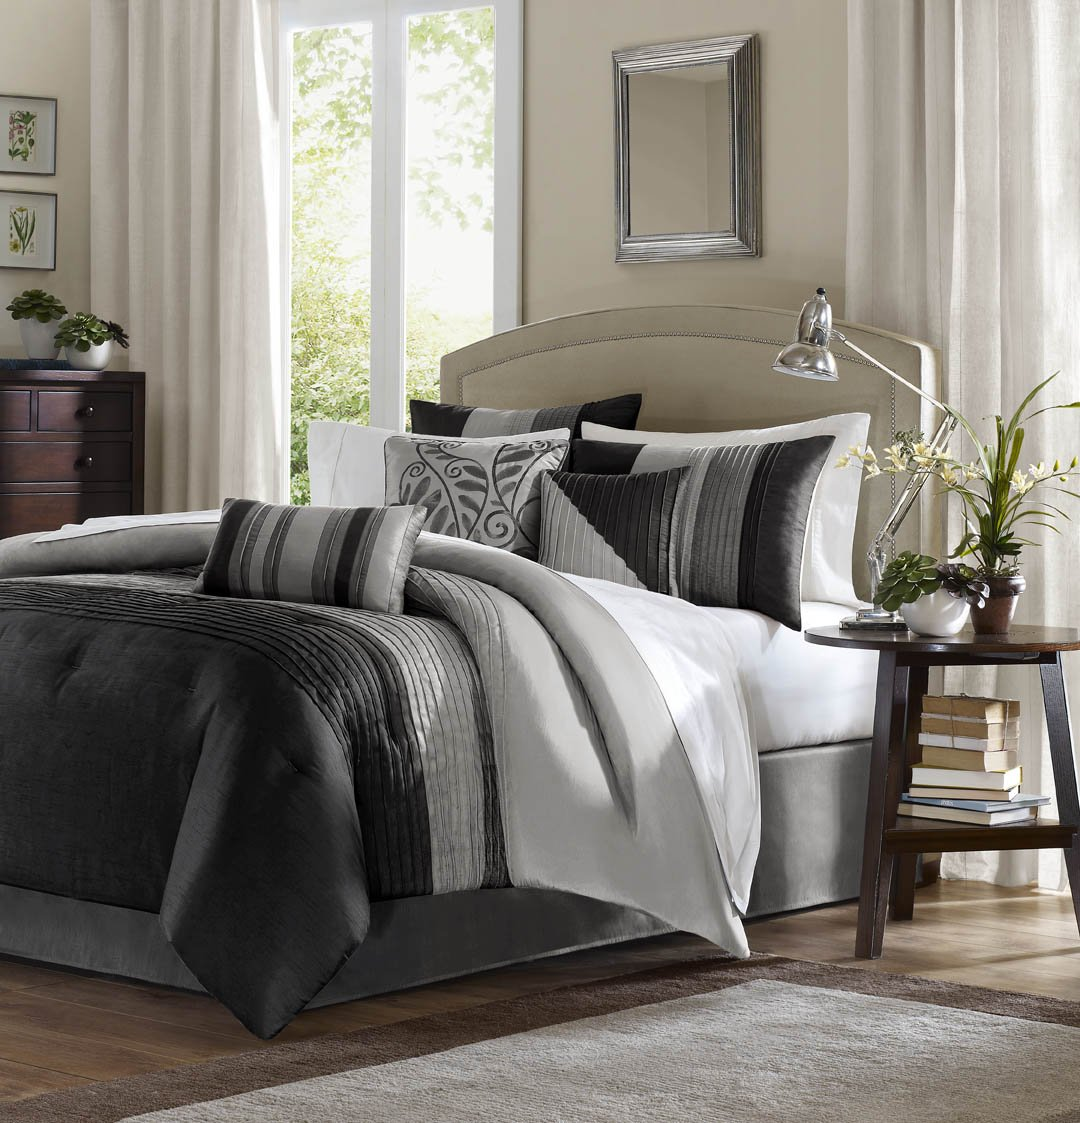 Madison Park Amherst Comforter Set, Queen, Black/Grey